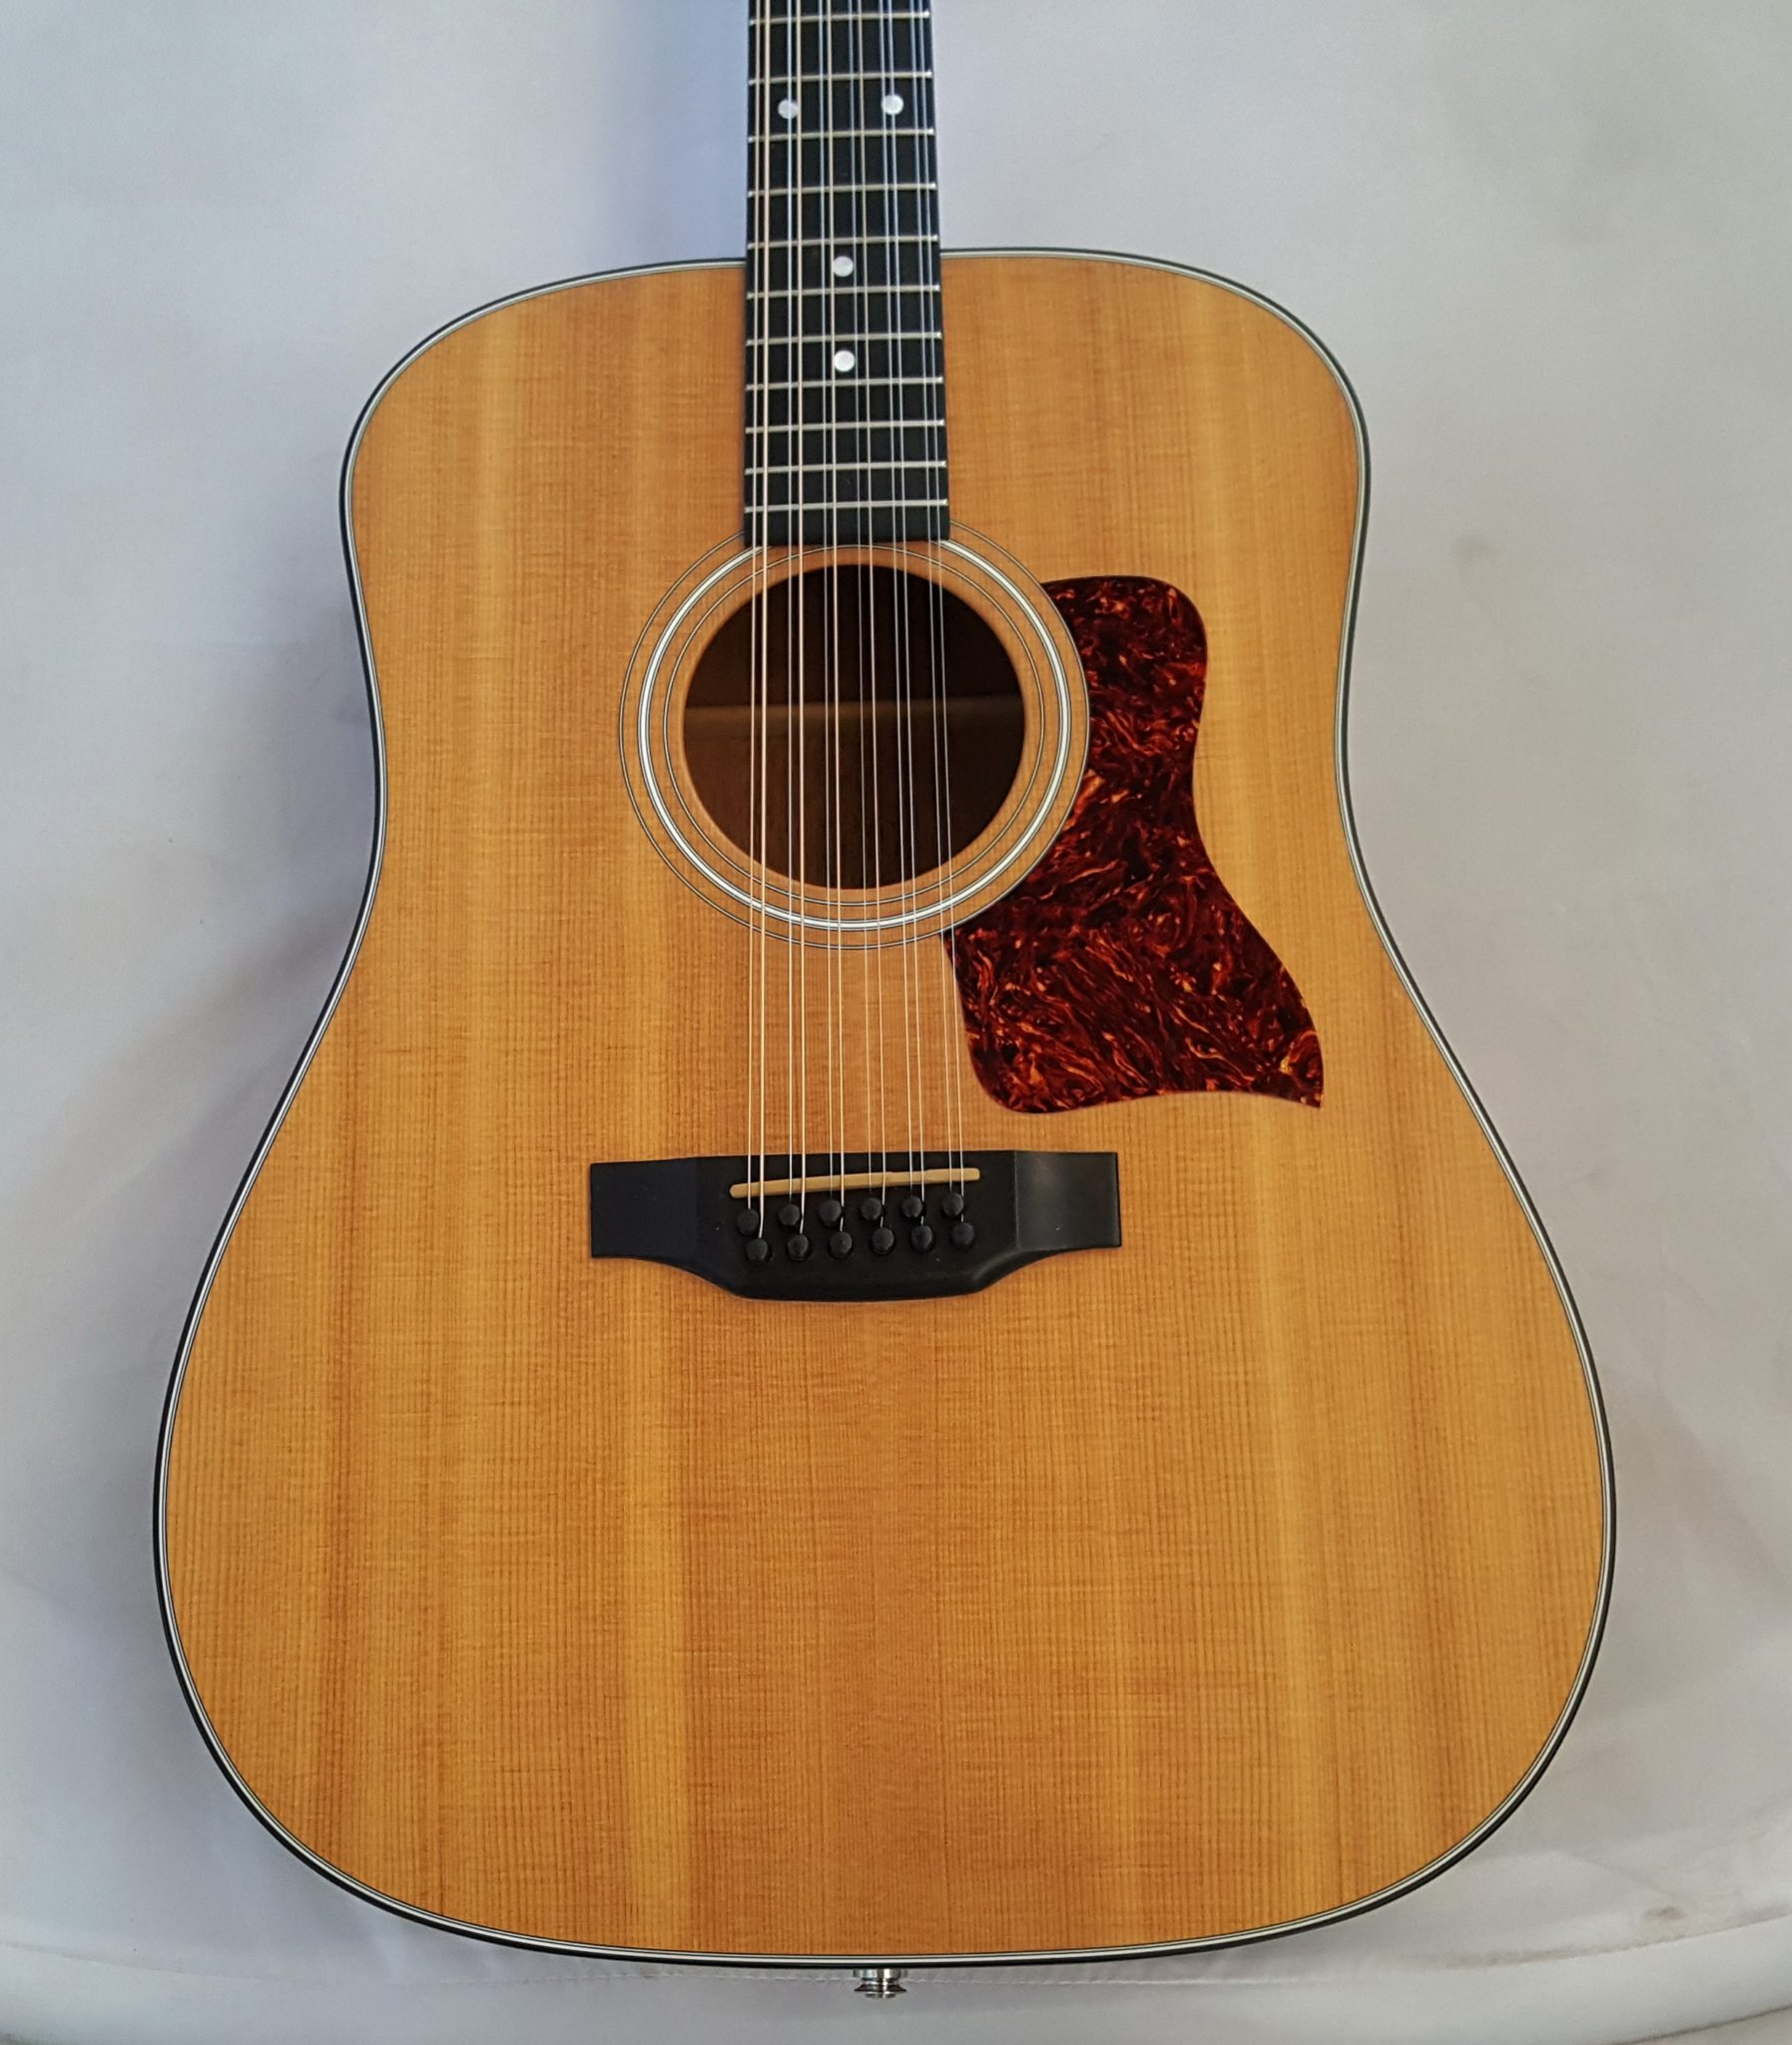 Taylor 450-E 12-string Dreadnought 1995 Natural